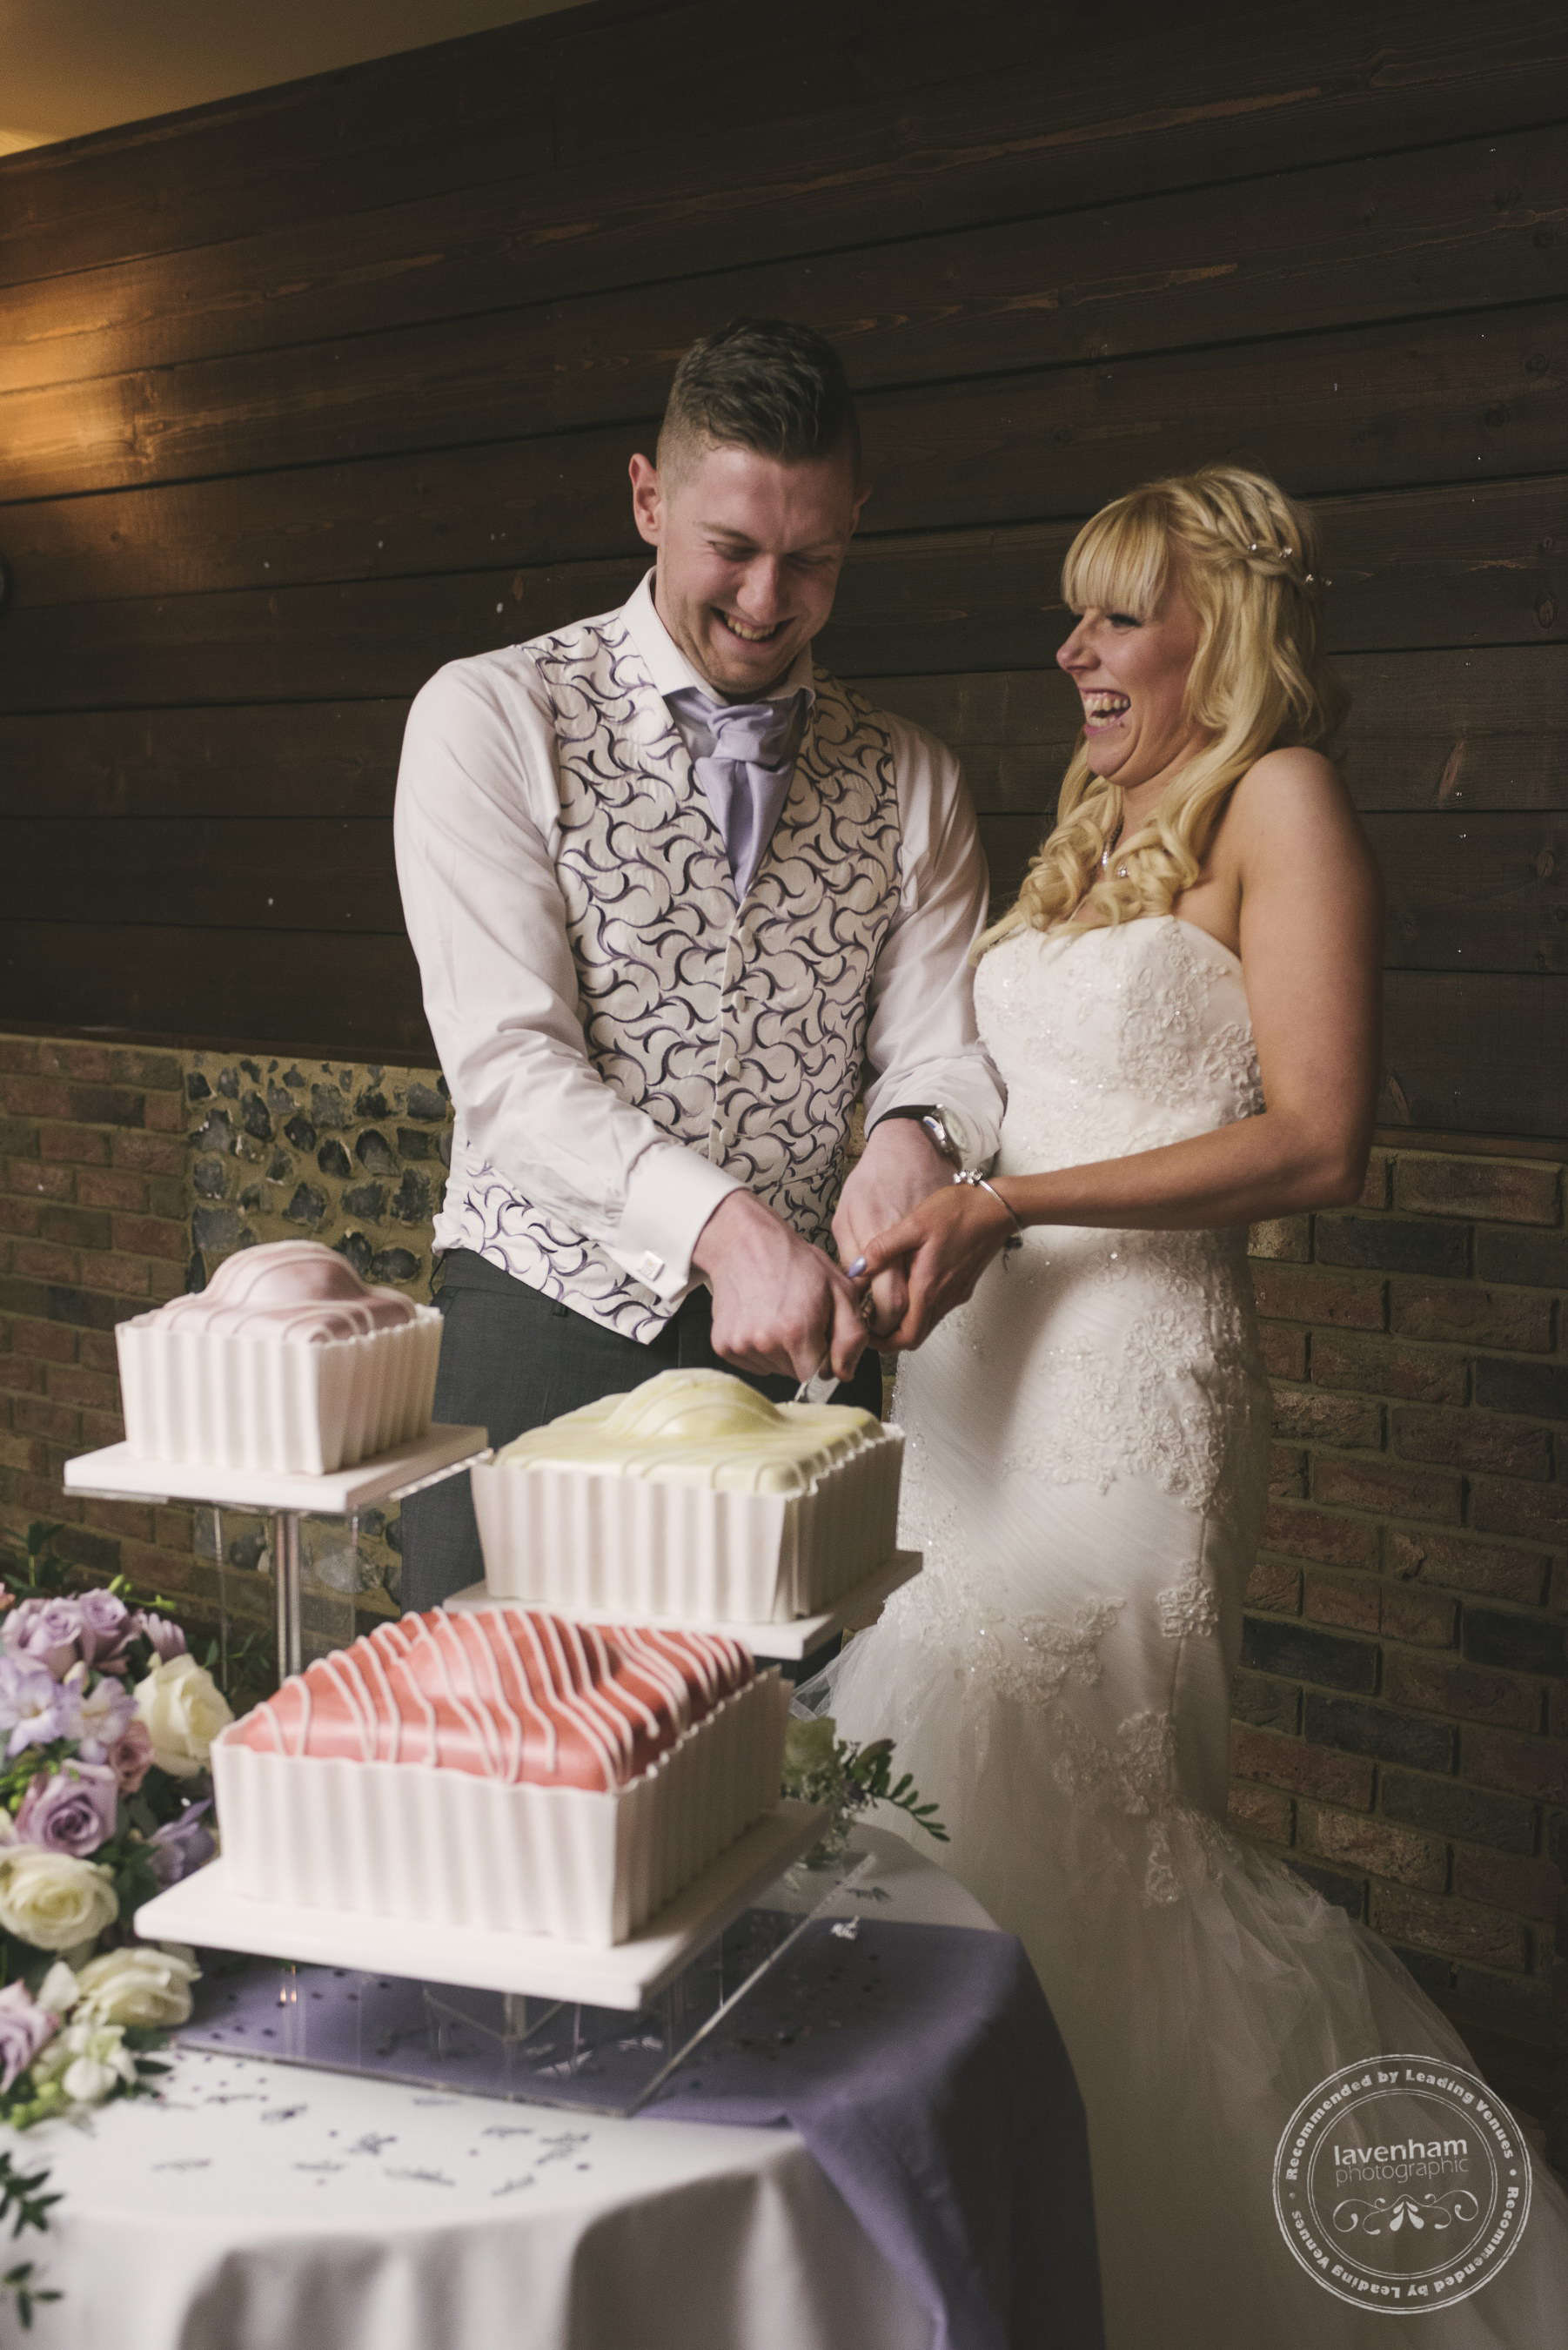 270216 White Hart Yeldham Wedding Photographer 130